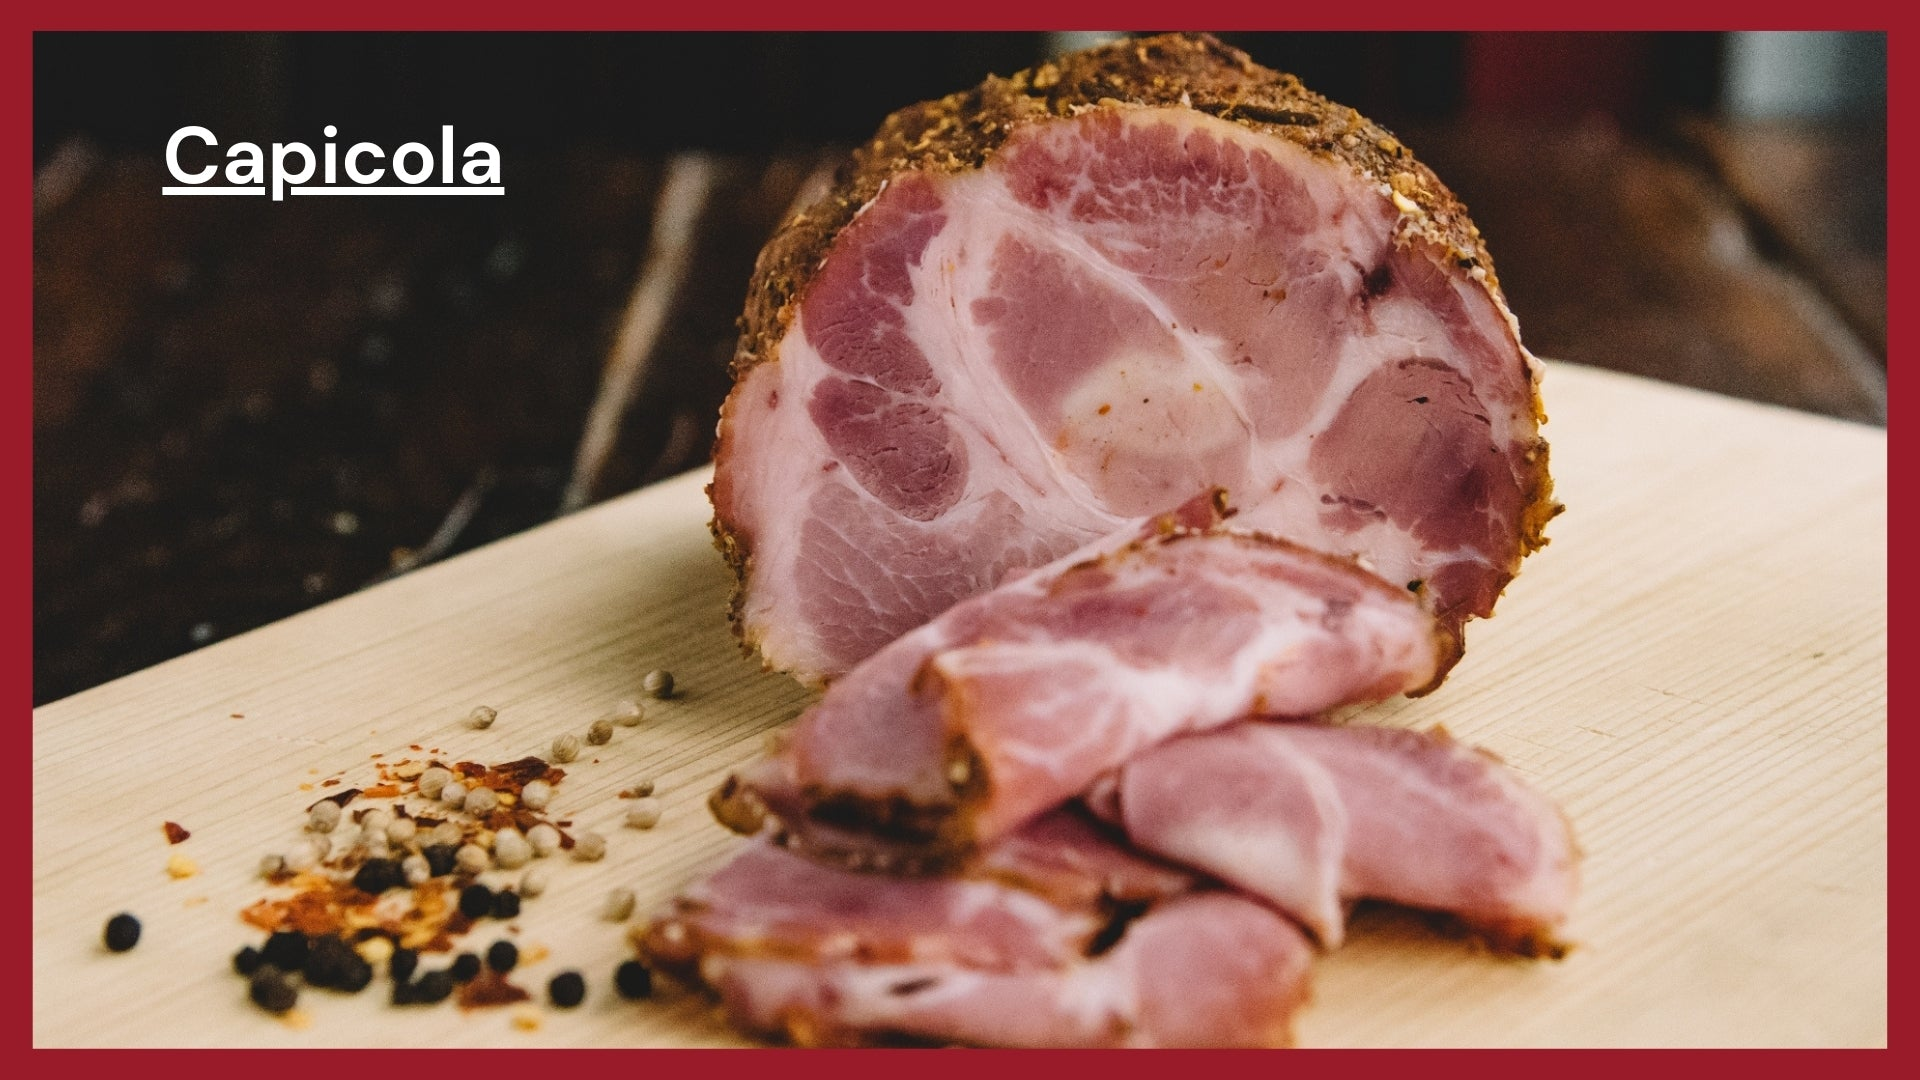 Capicola shot and cut at the mid section to show it's marbling with thing slices in the foreground.